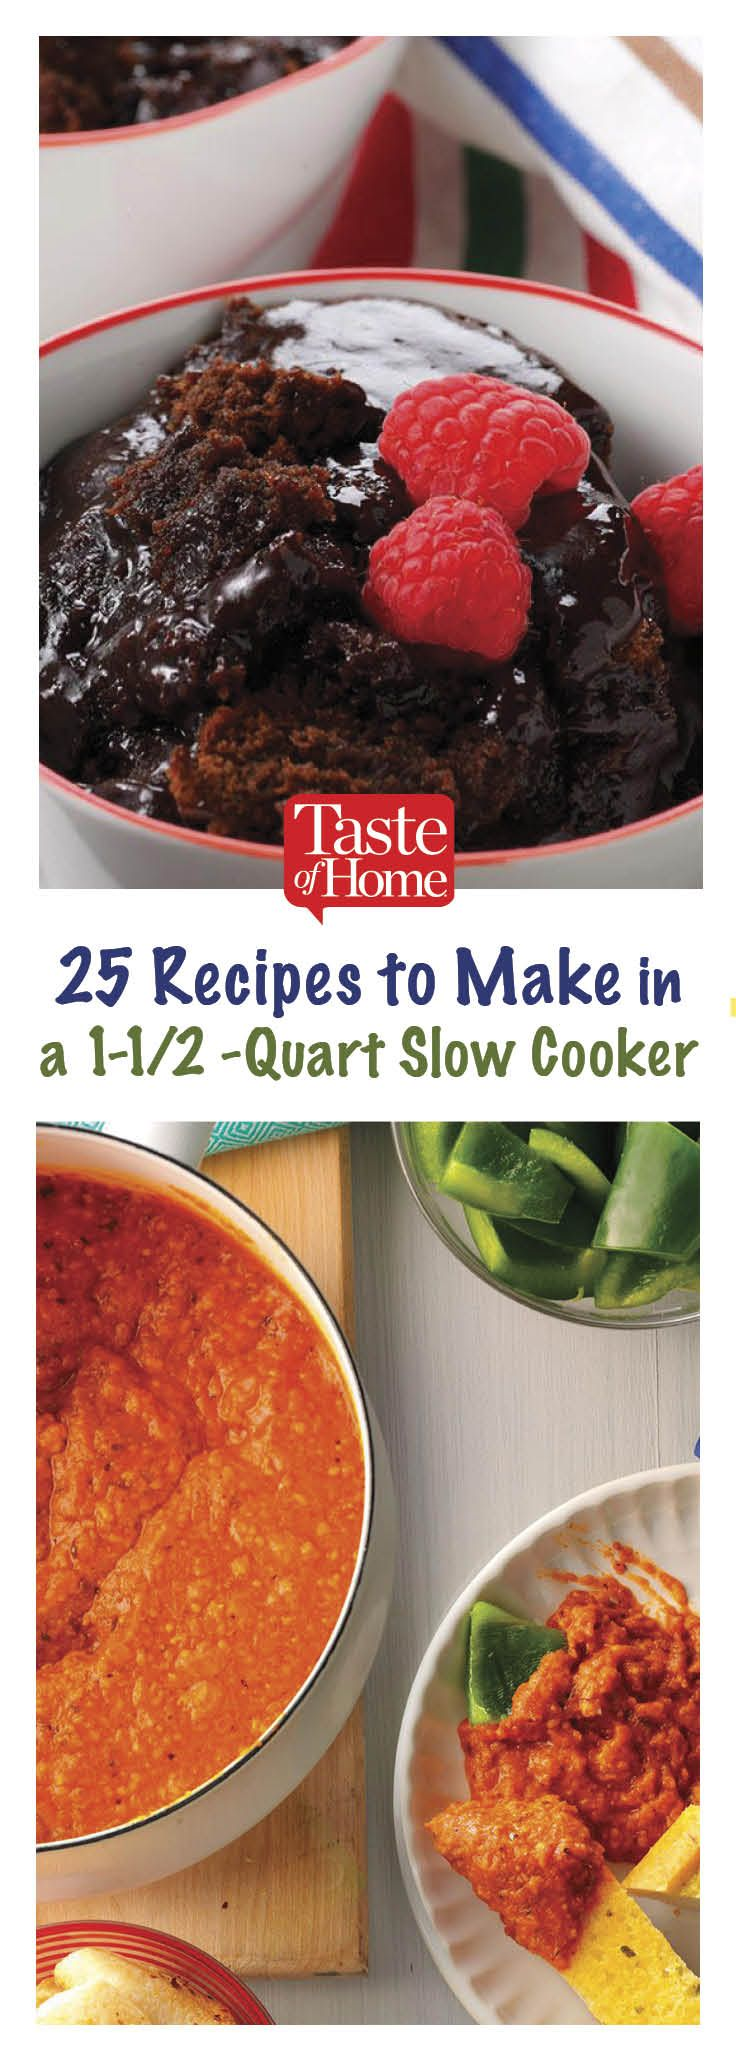 25 Recipes to Make in a 1-1/2-Quart Slow Cooker